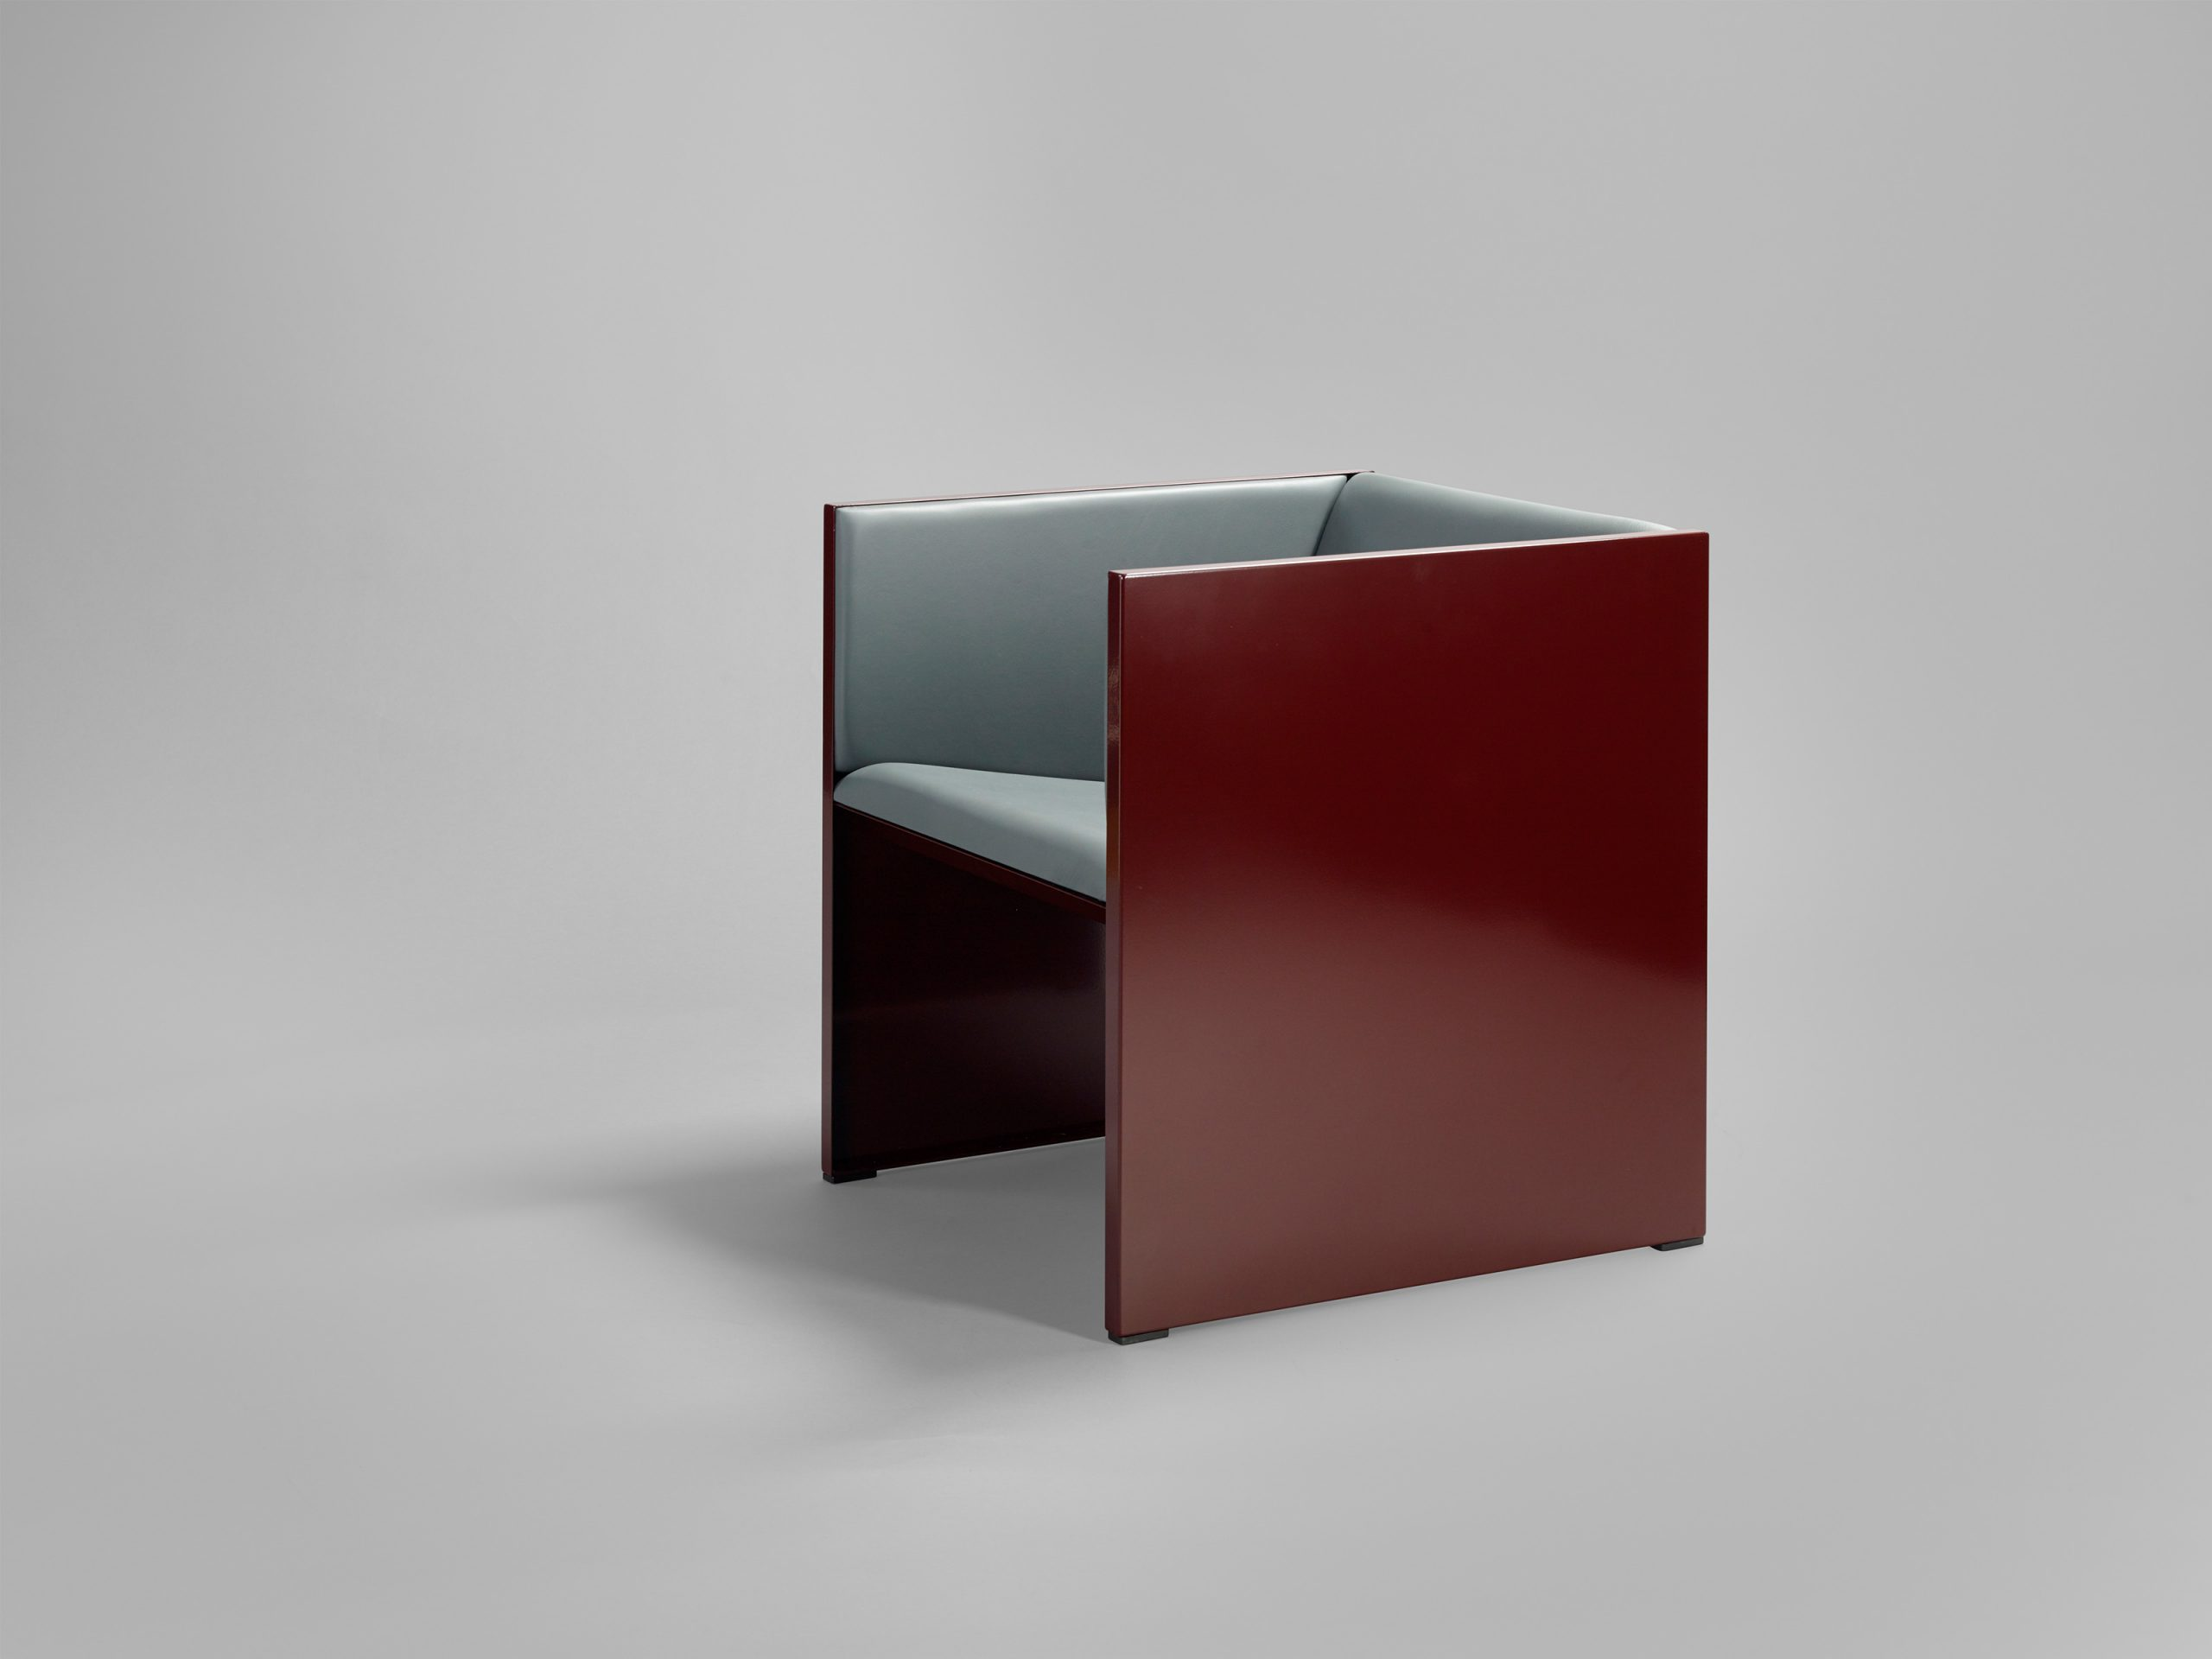 https://www.minustio.se/wp-content/uploads/2021/03/Lodger-armchair2-scaled.jpg